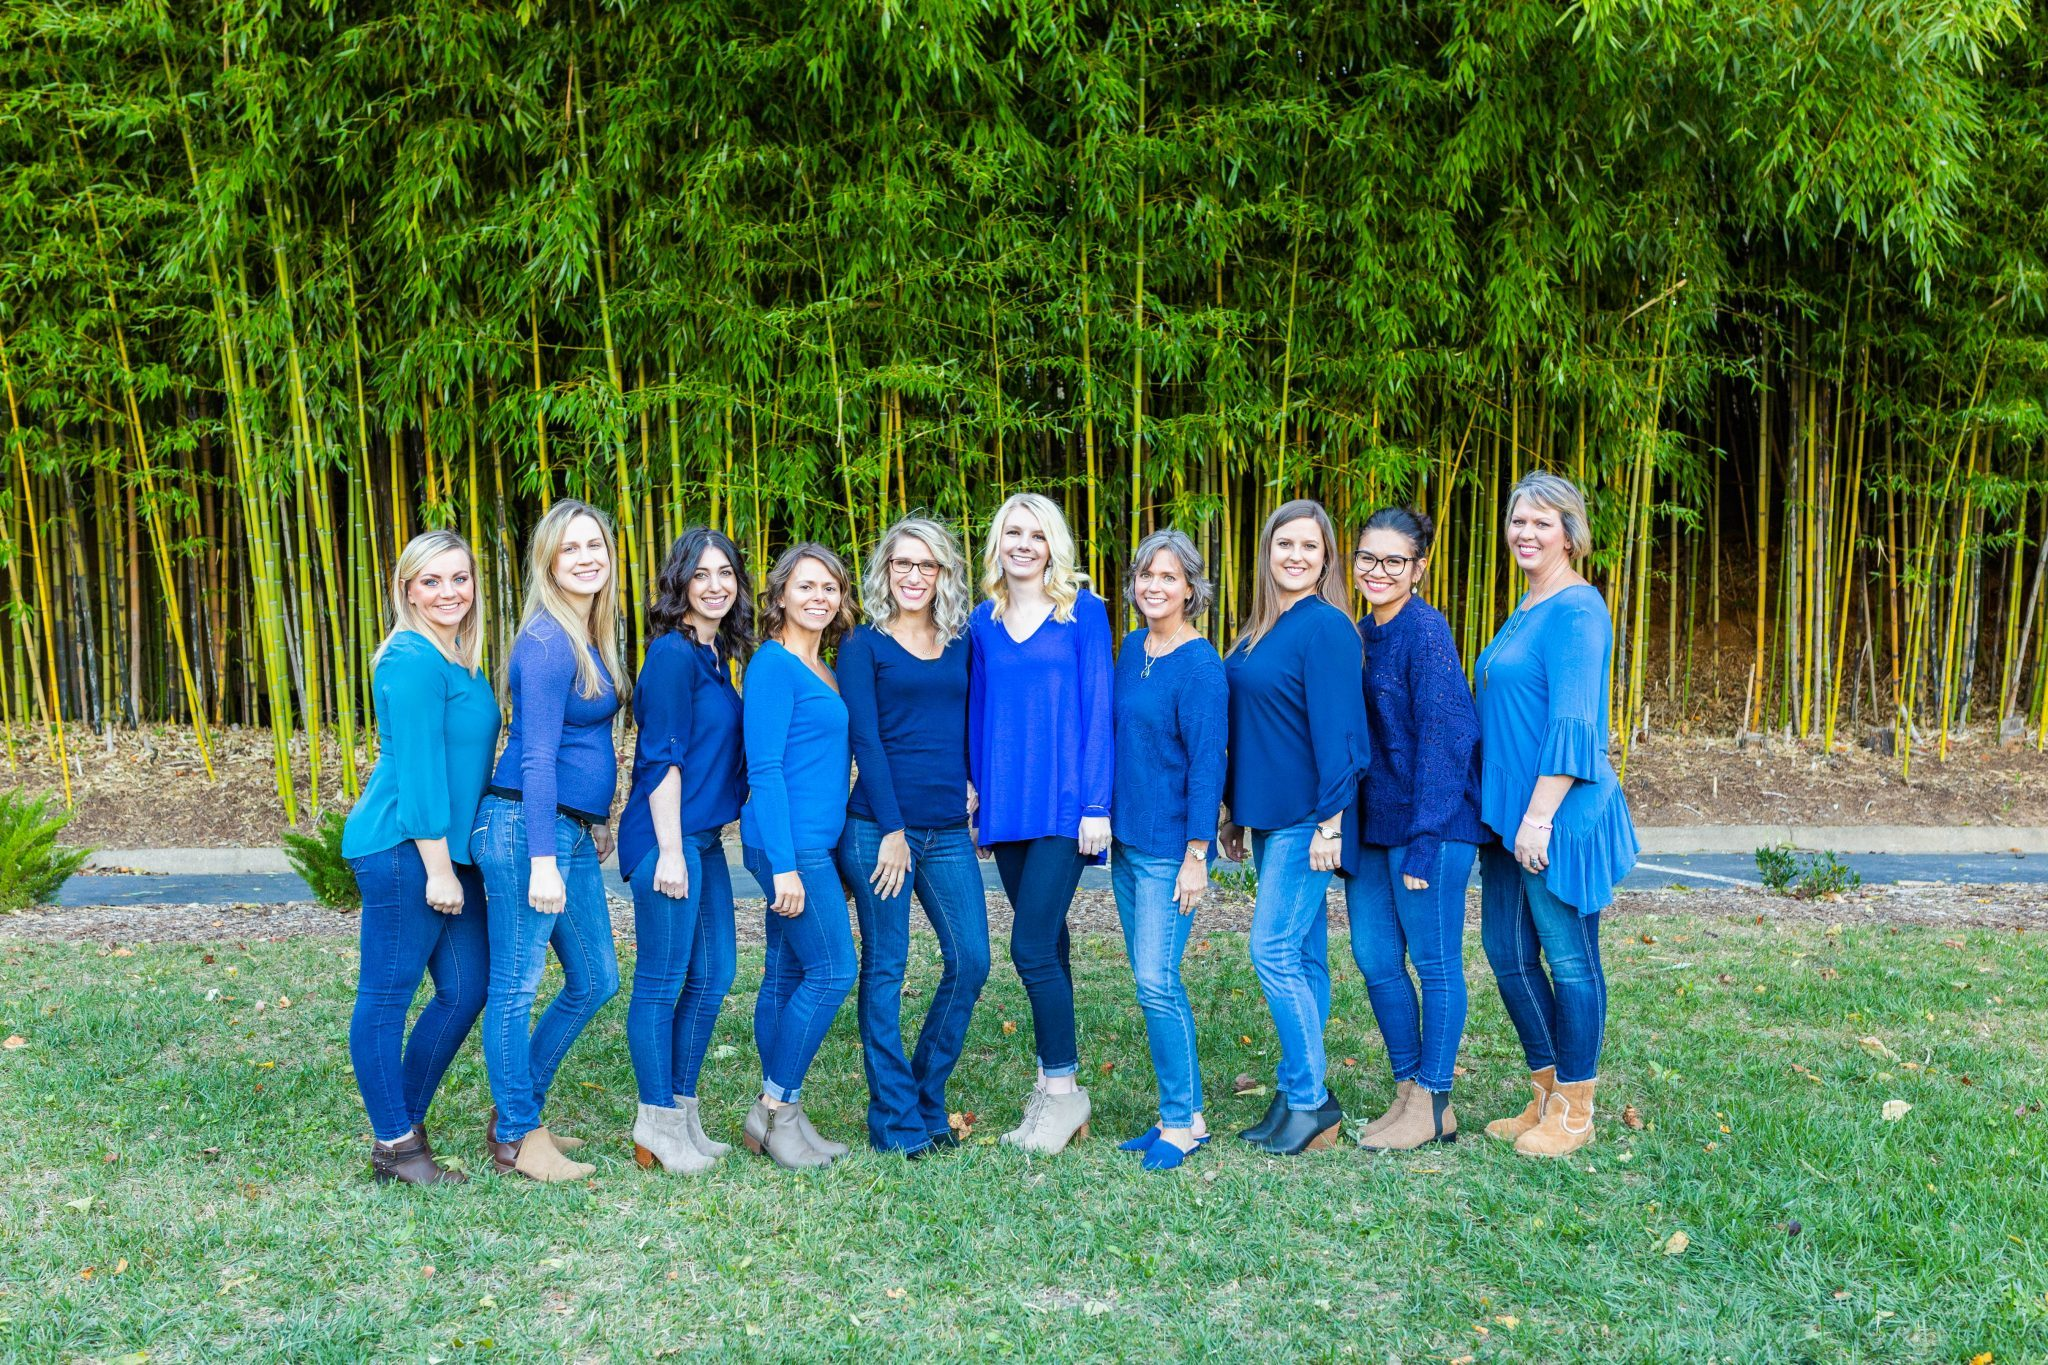 Staff picture for Blue Ridge Orthodontics in Hendersonville